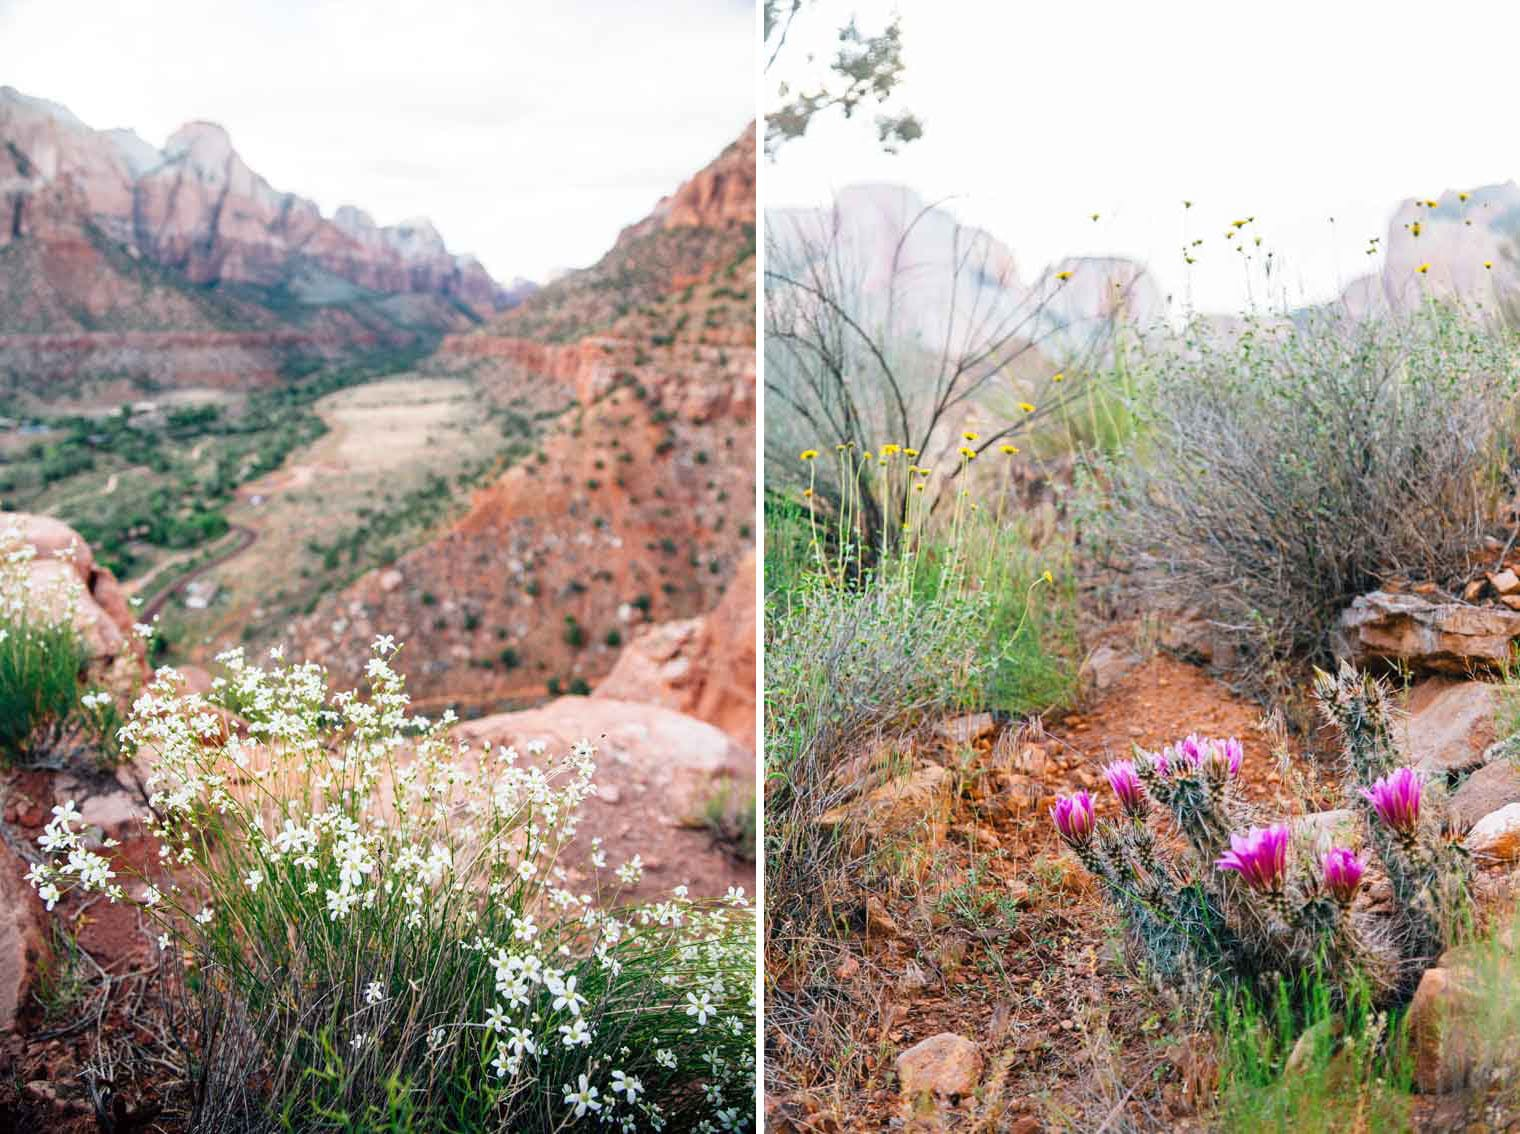 Close up of wildflowers in Zion national park